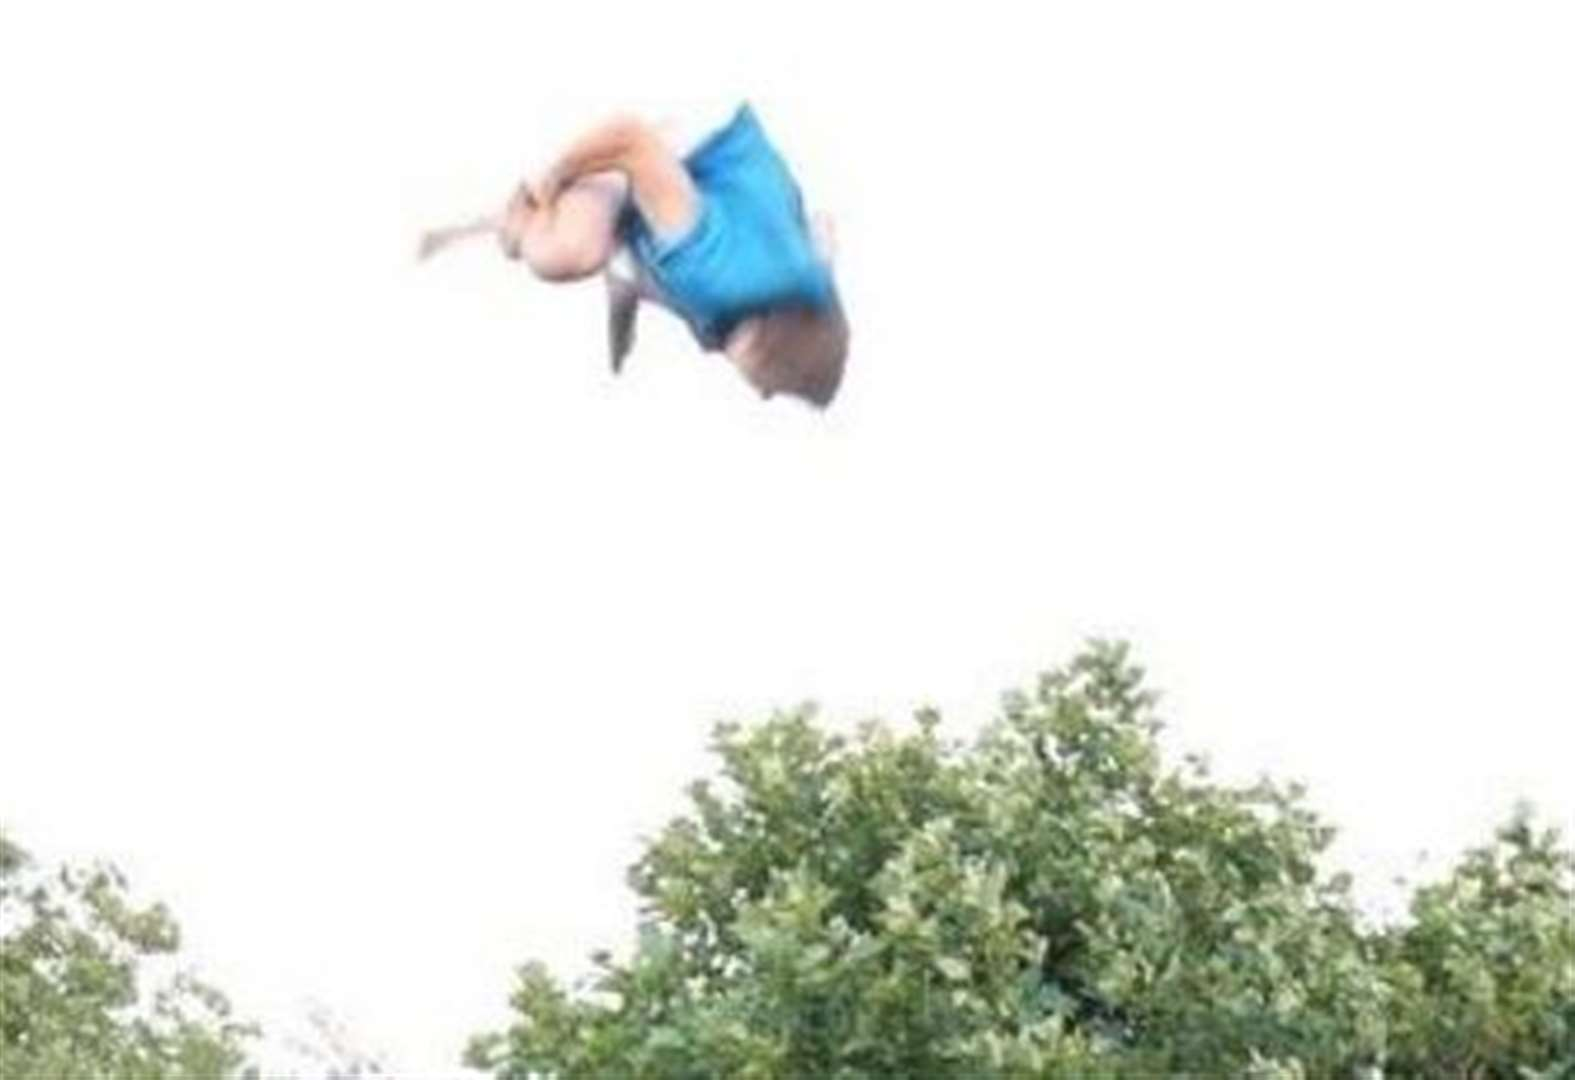 Daredevil teen's six-spin somersault